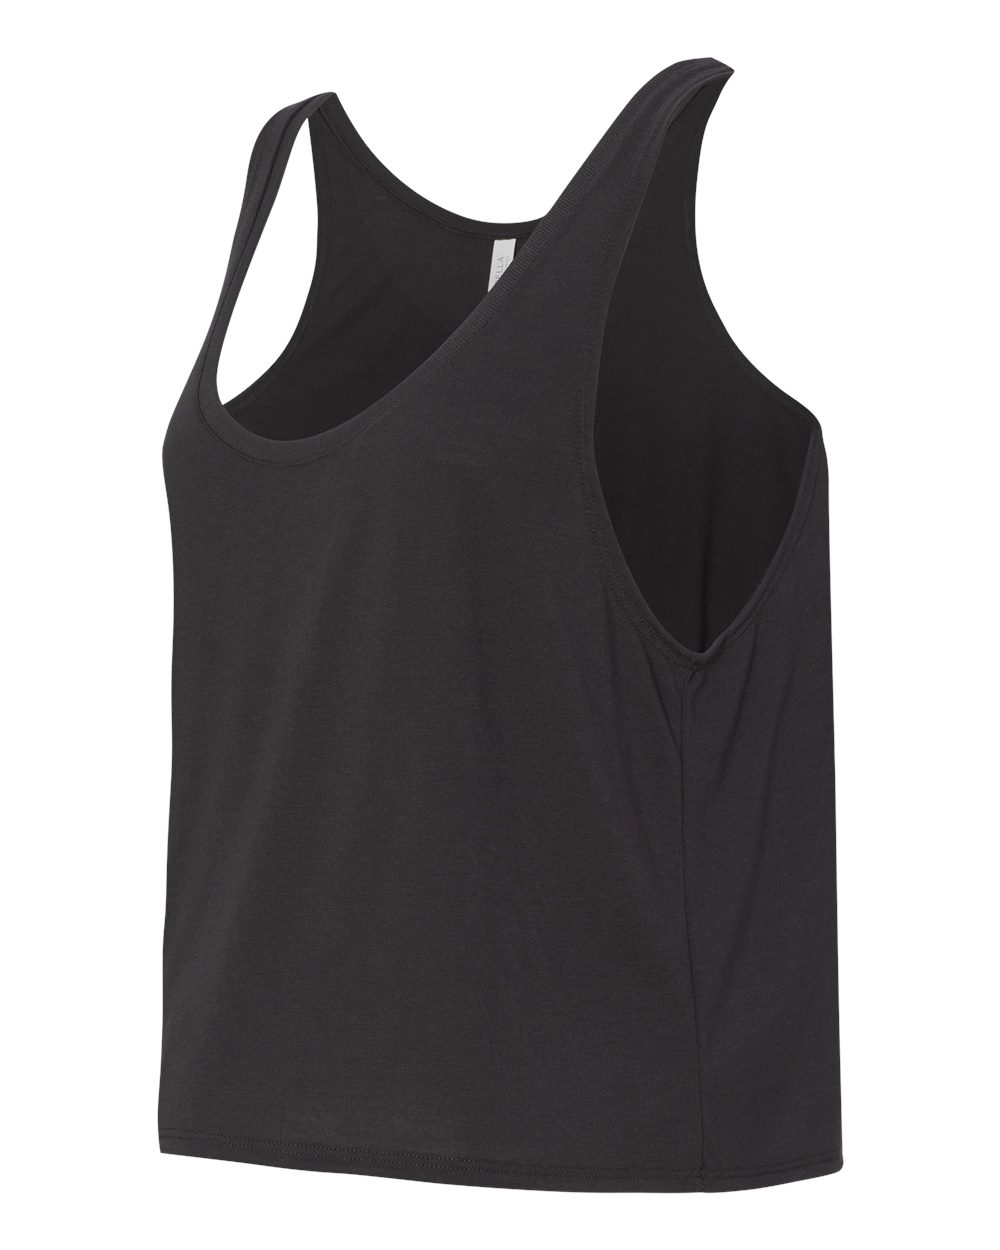 Bella-Canvas-Women-039-s-Flowy-Boxy-Tank-8880-S-XL thumbnail 39